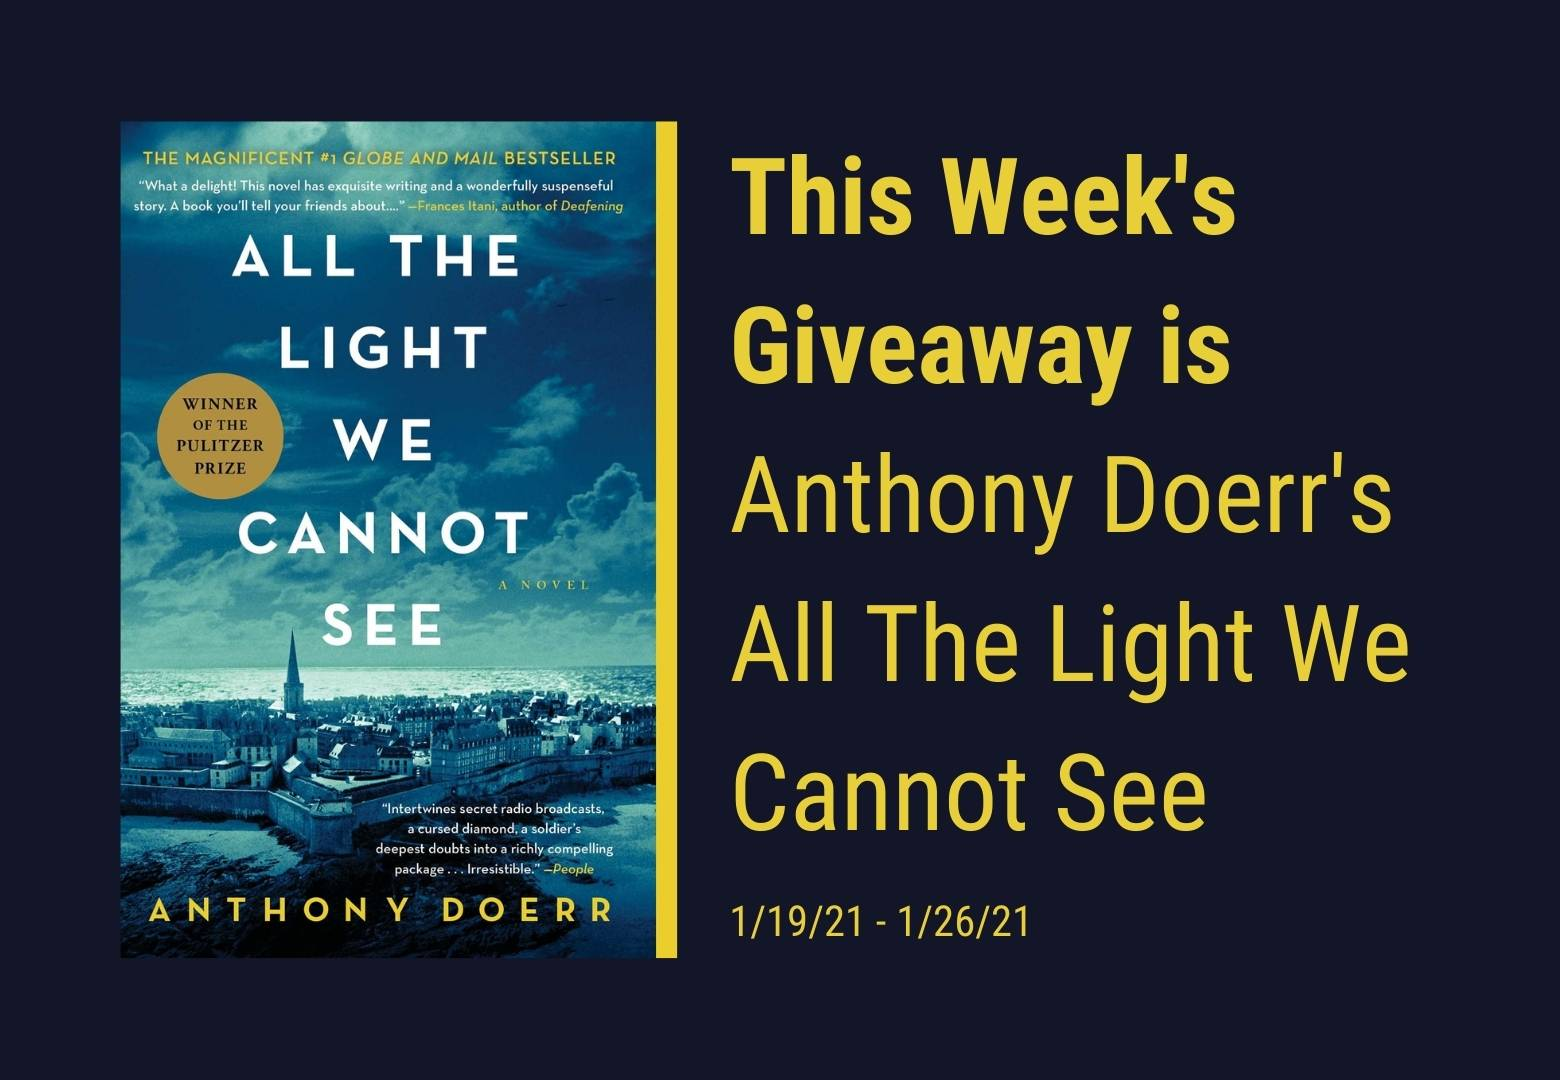 all the light we cannot see giveaway